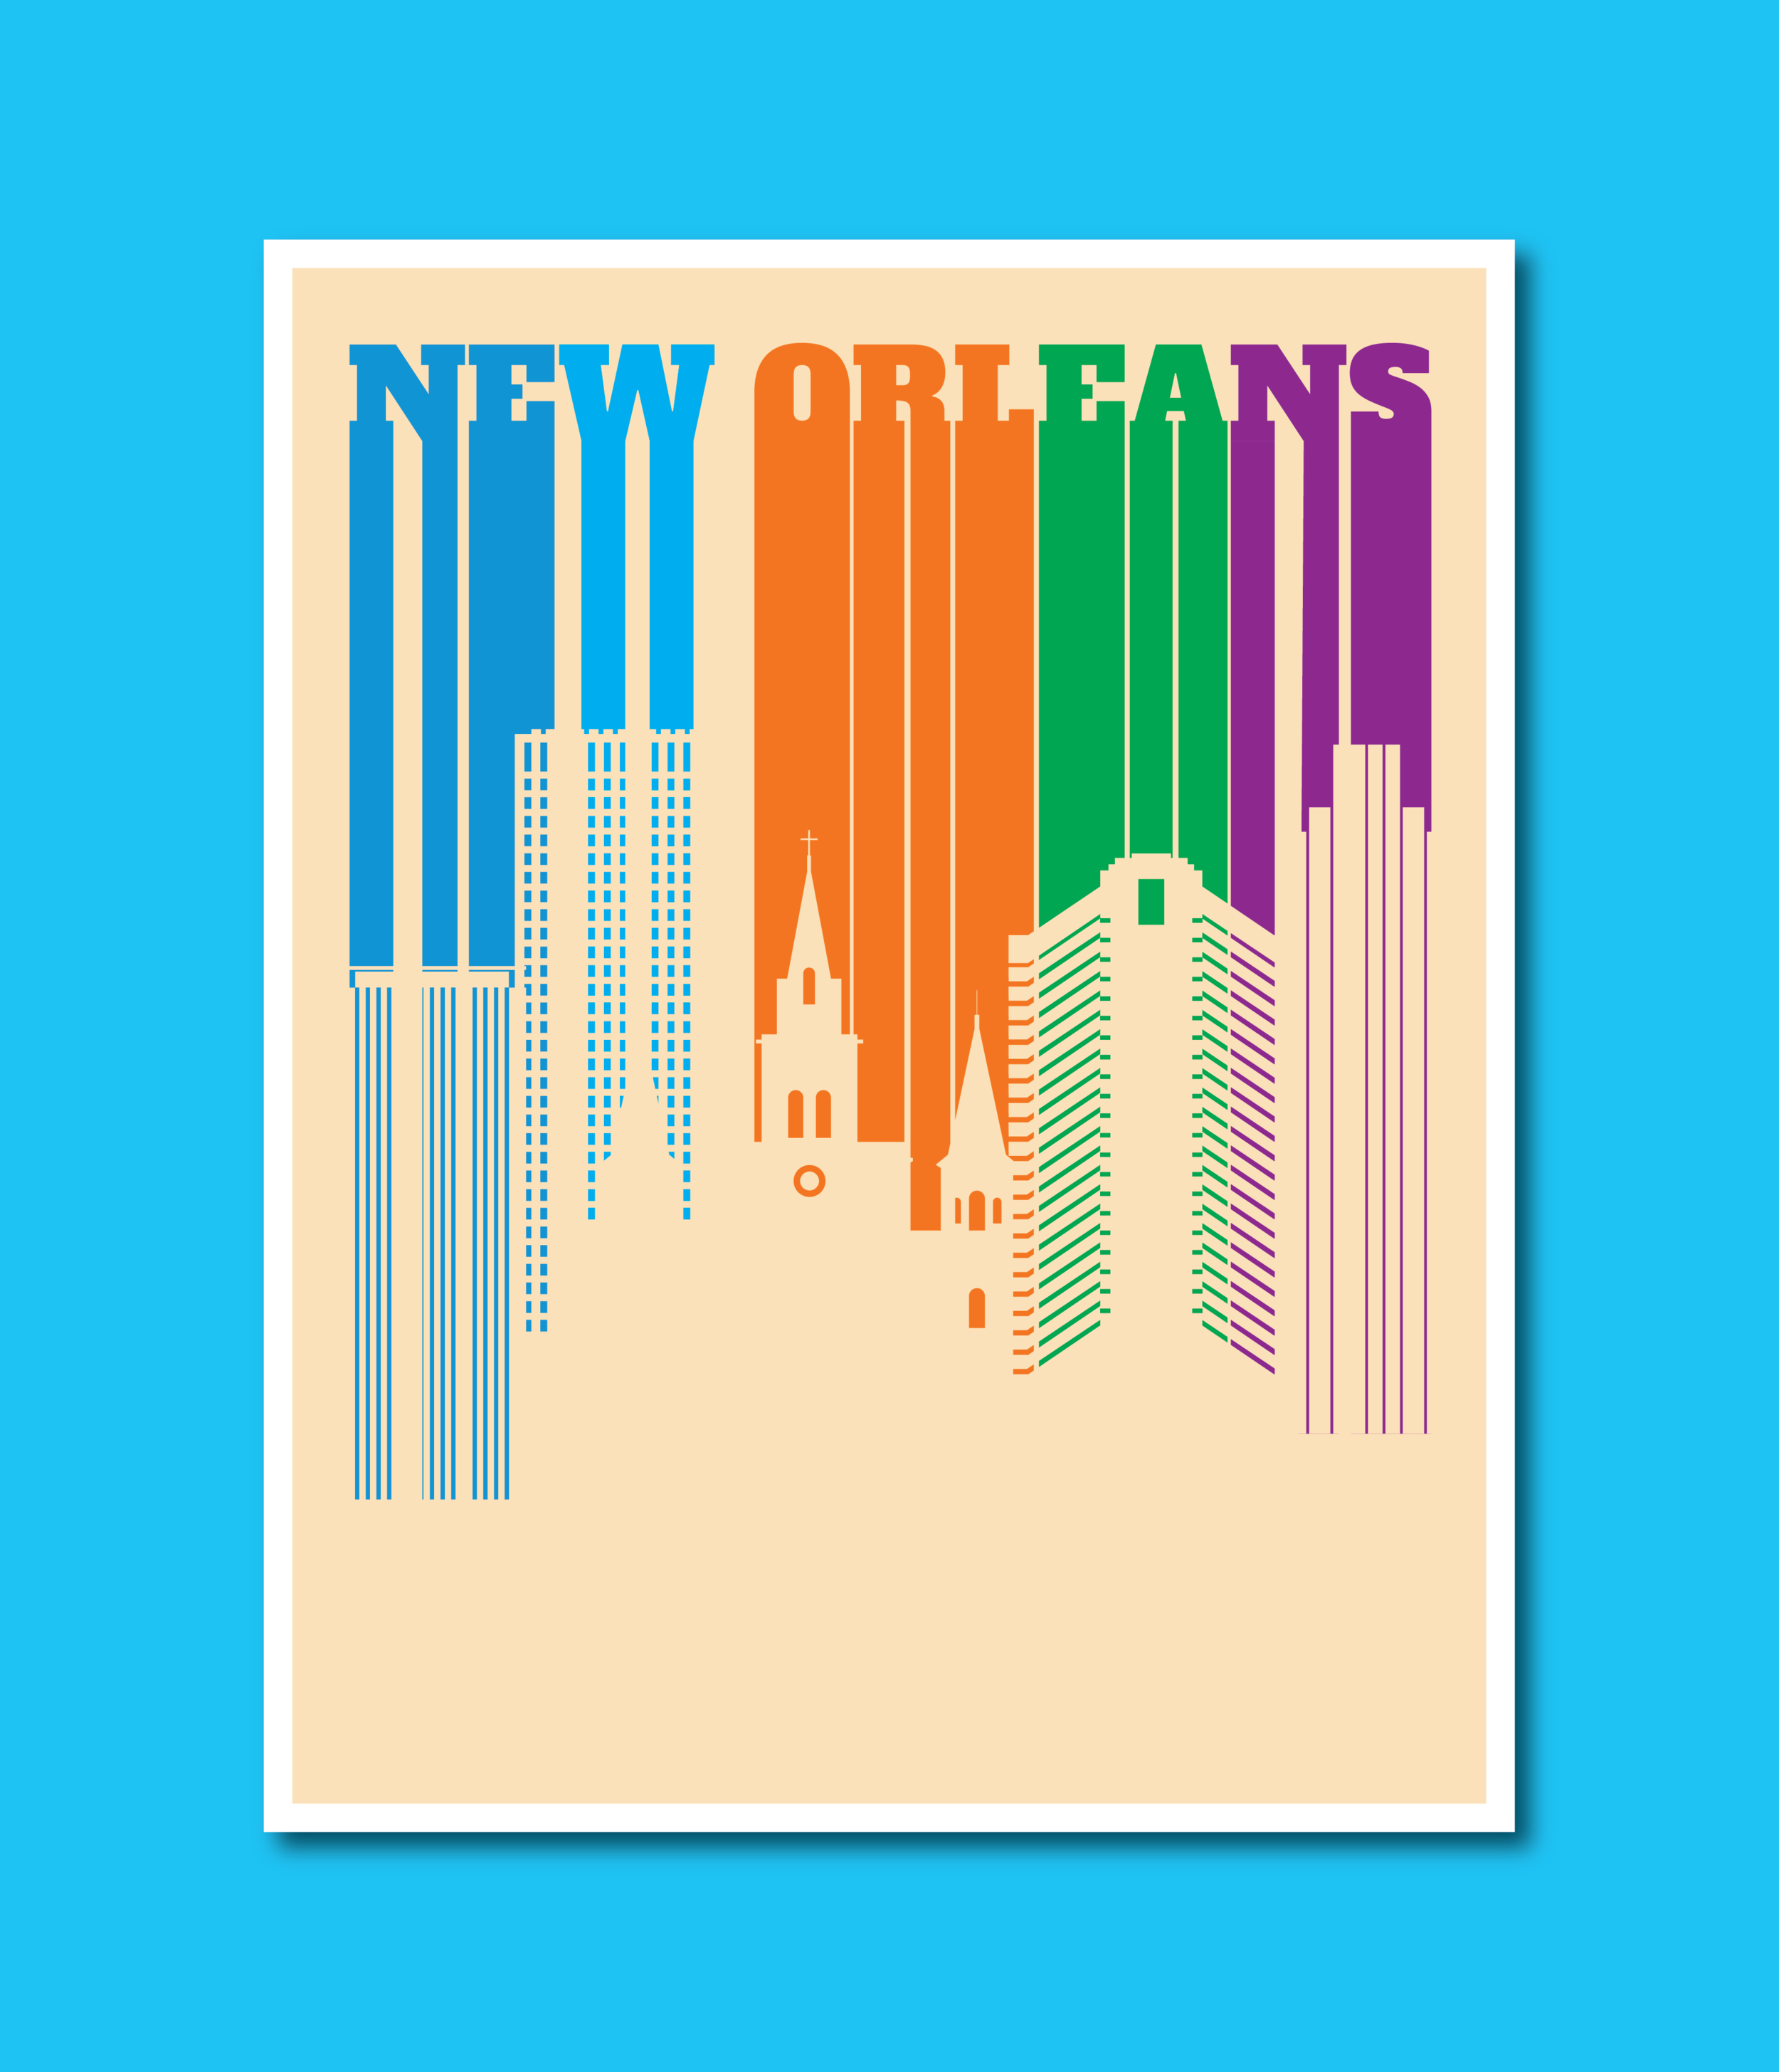 MarioSiART New Orleans in Bold Letters form the City Skyline